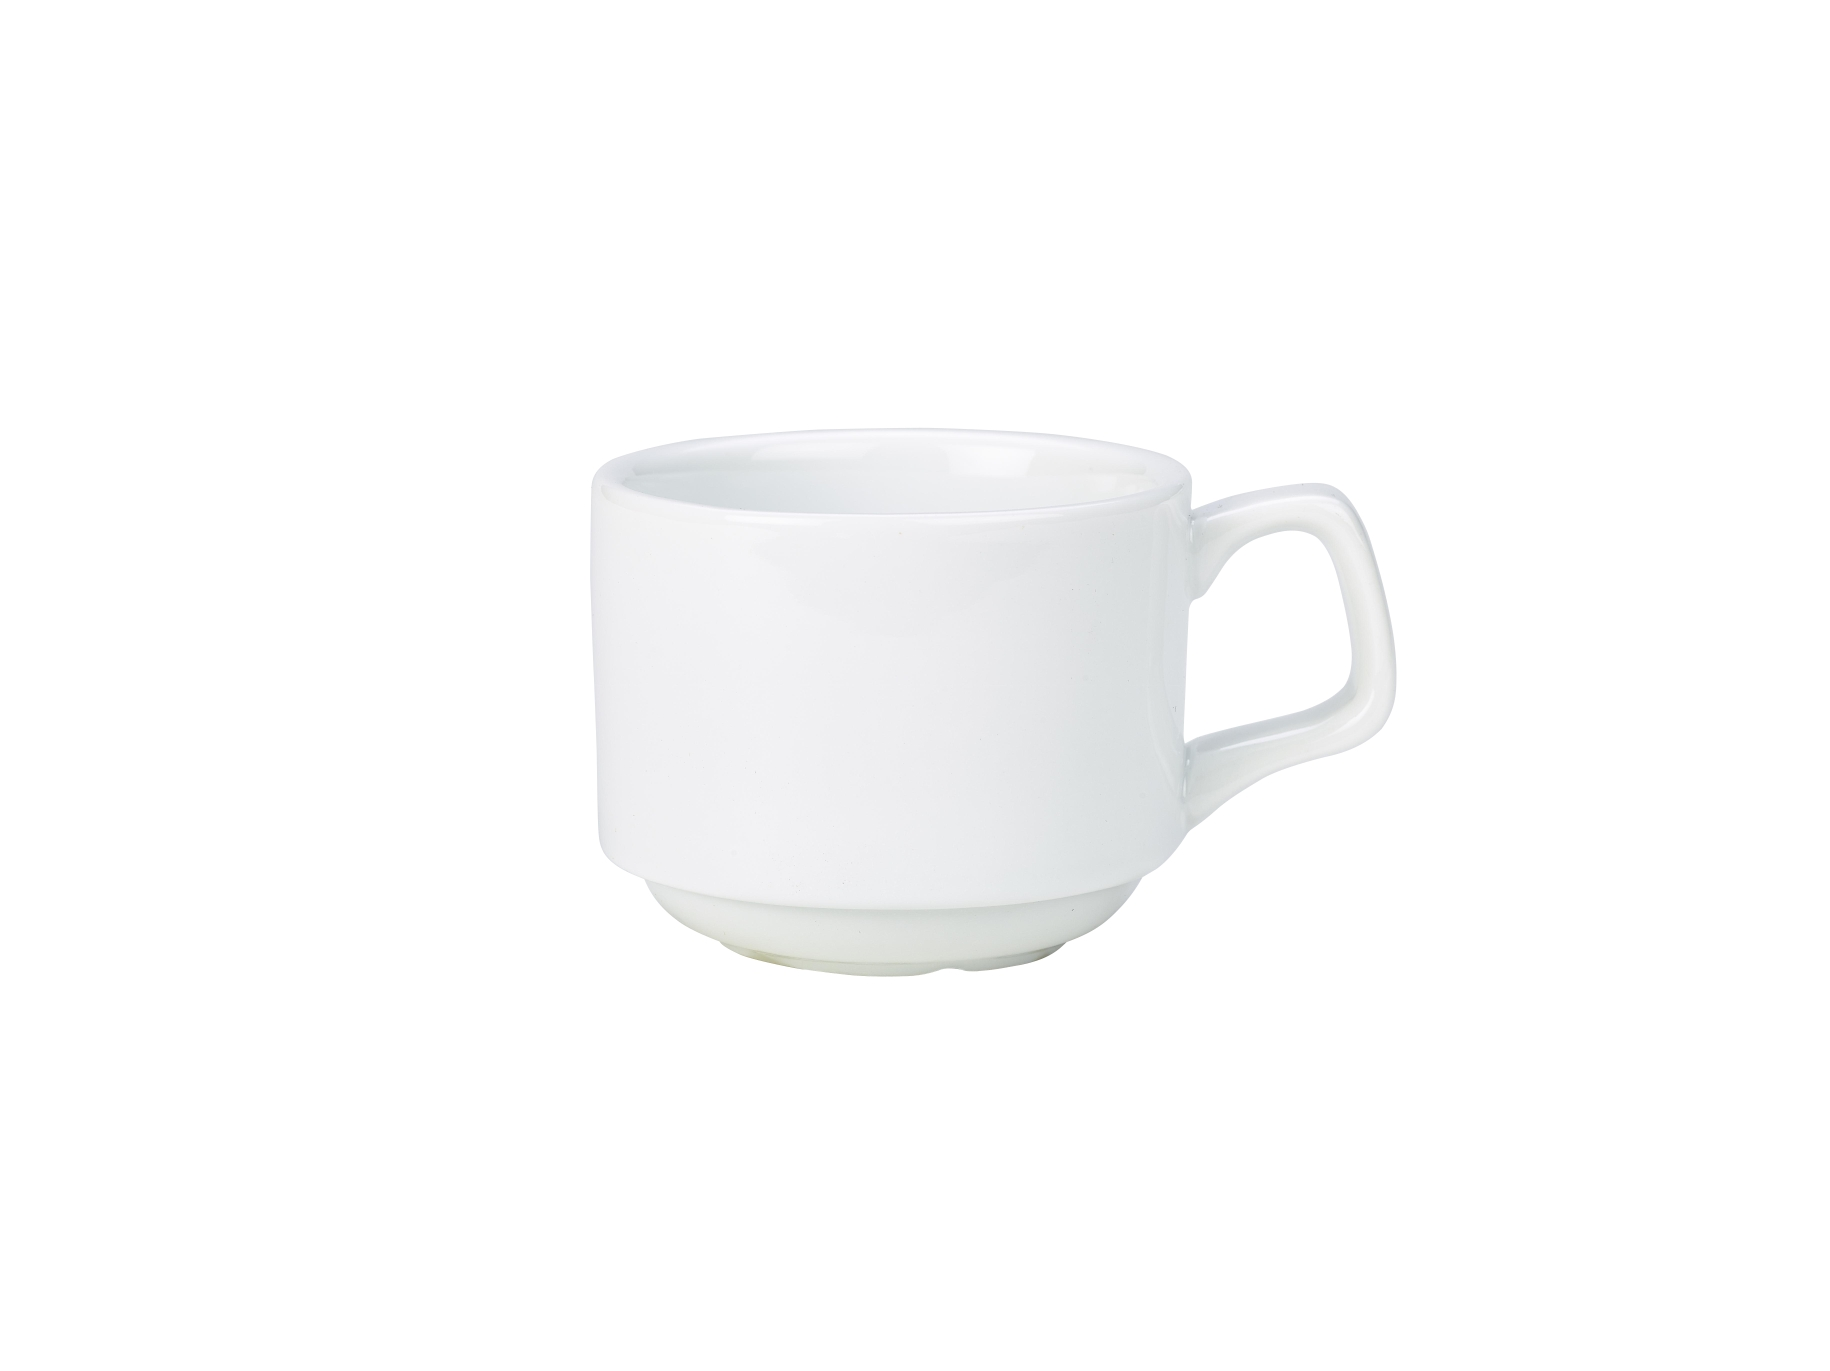 Genware Porcelain Stacking Cup 17cl